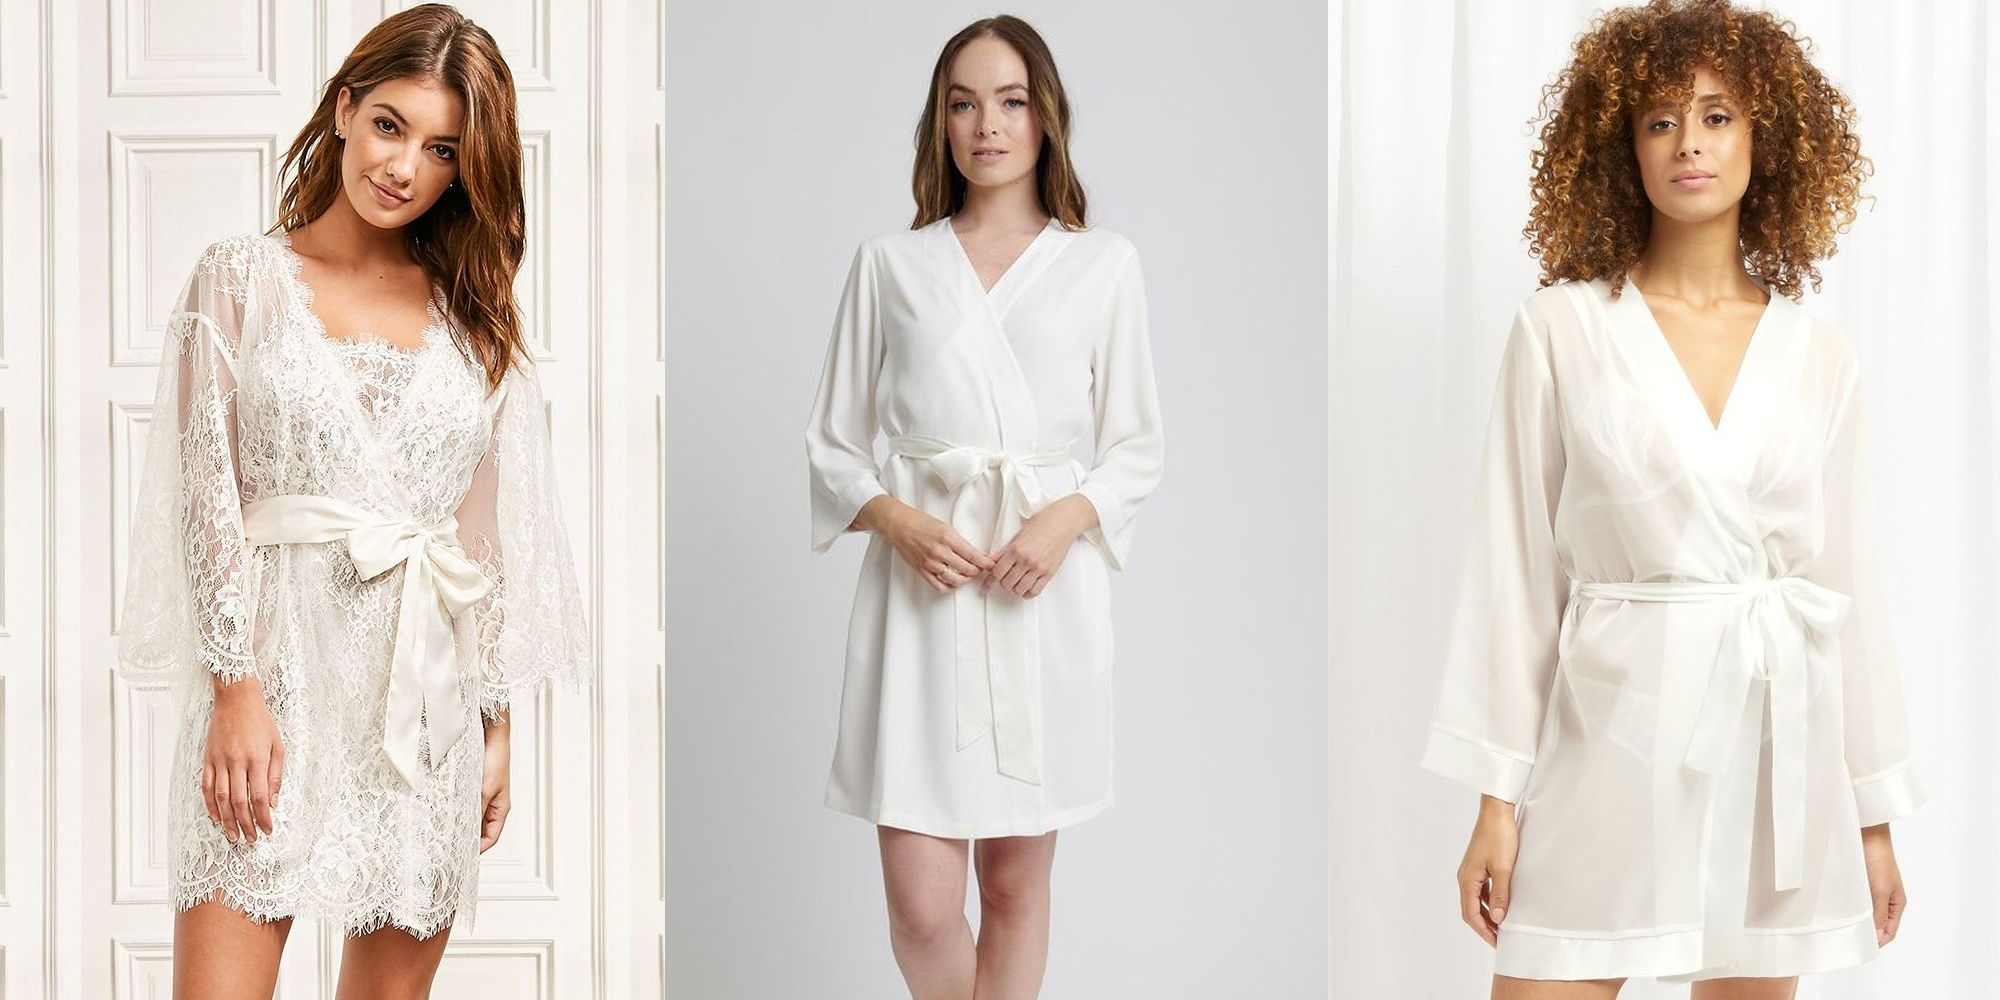 The best bridal dressing gowns for your wedding day